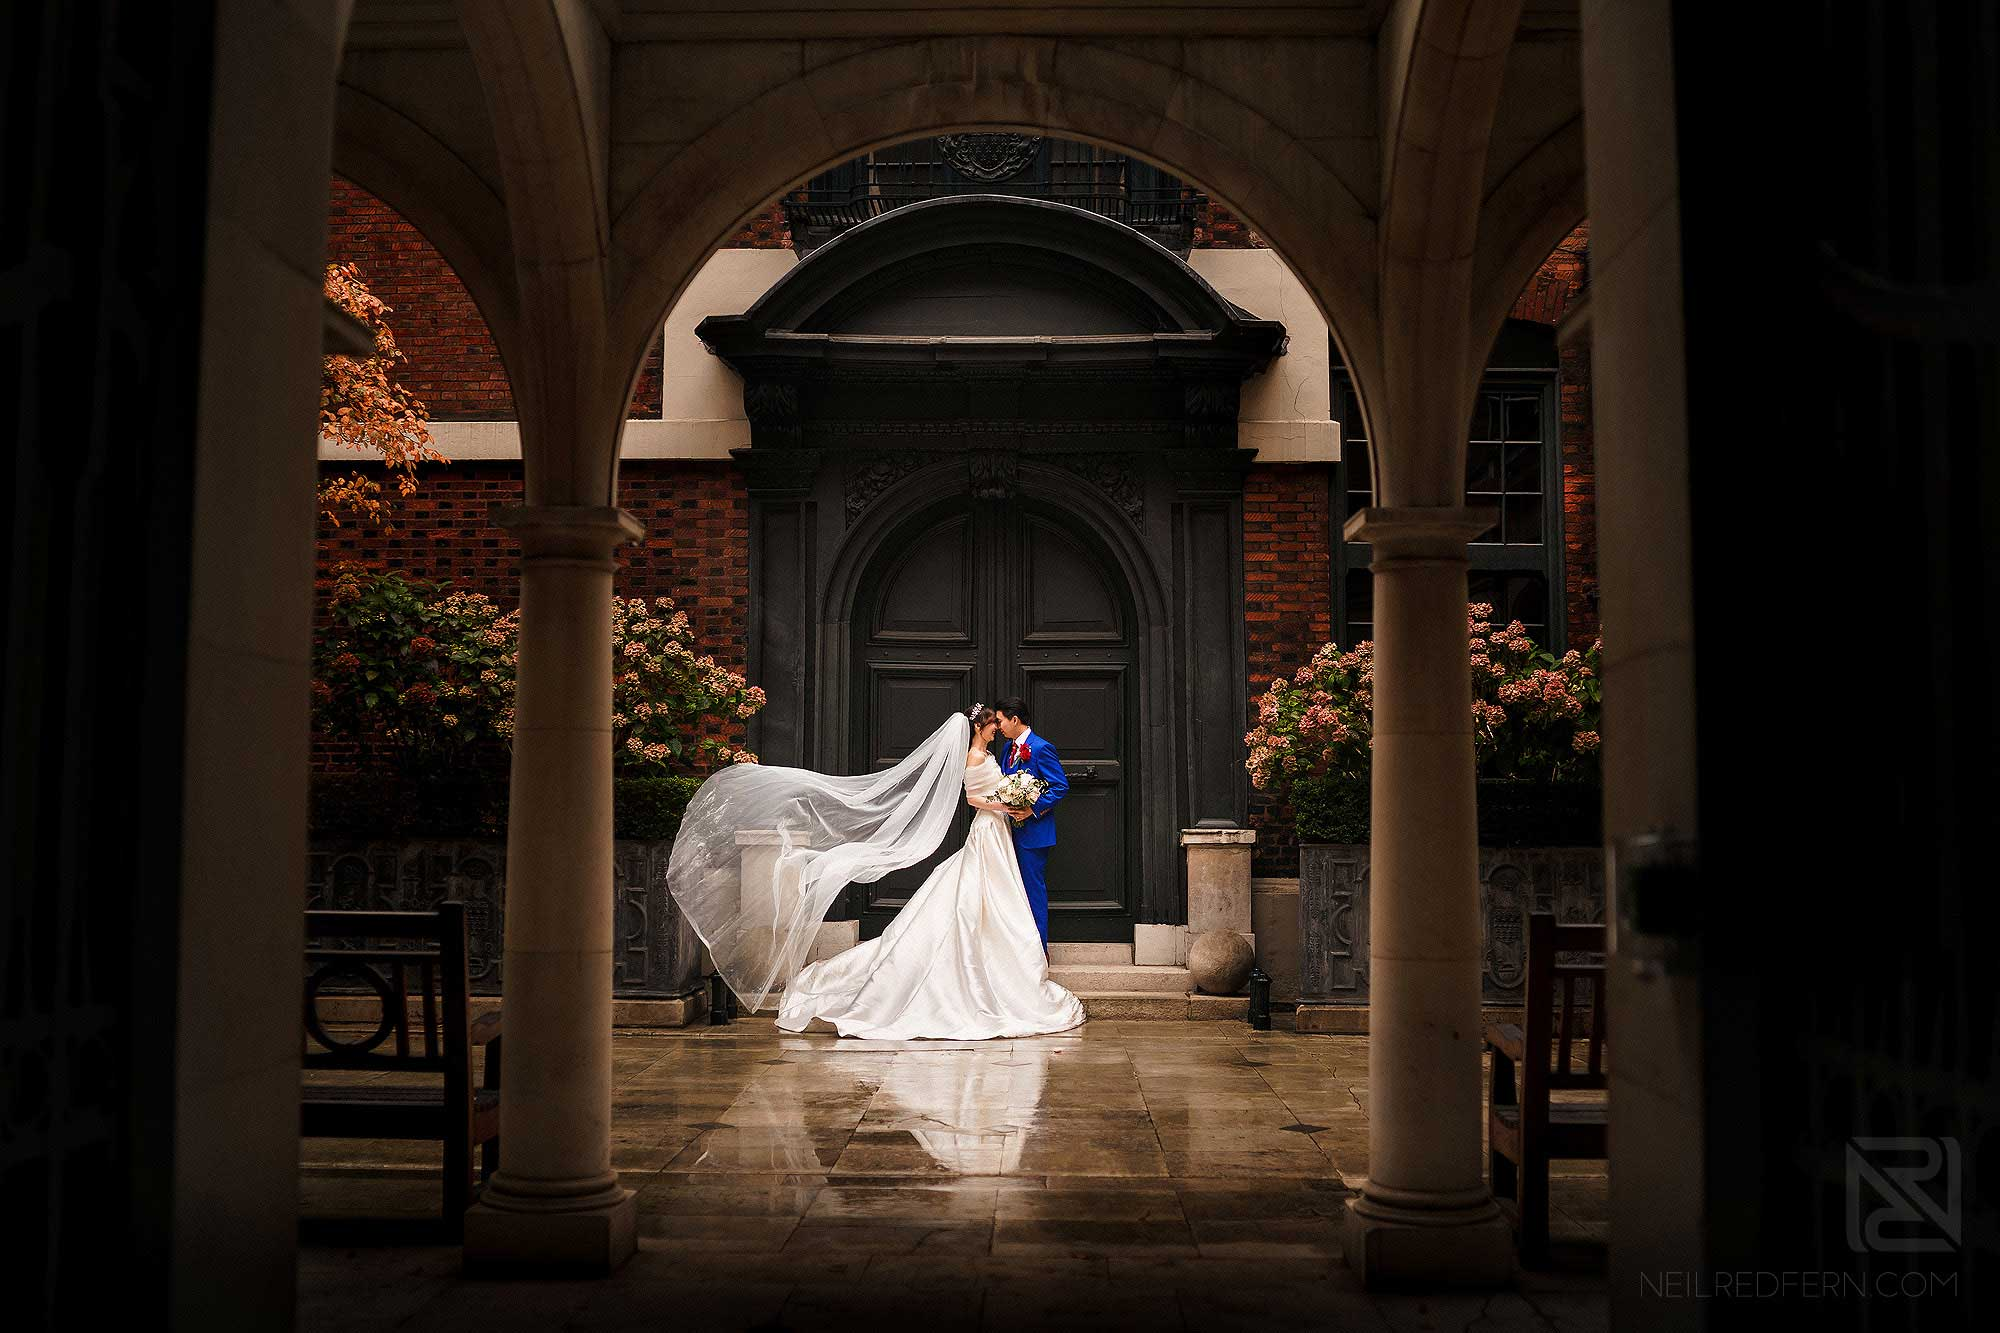 beautiful portrait photograph of newly married couple